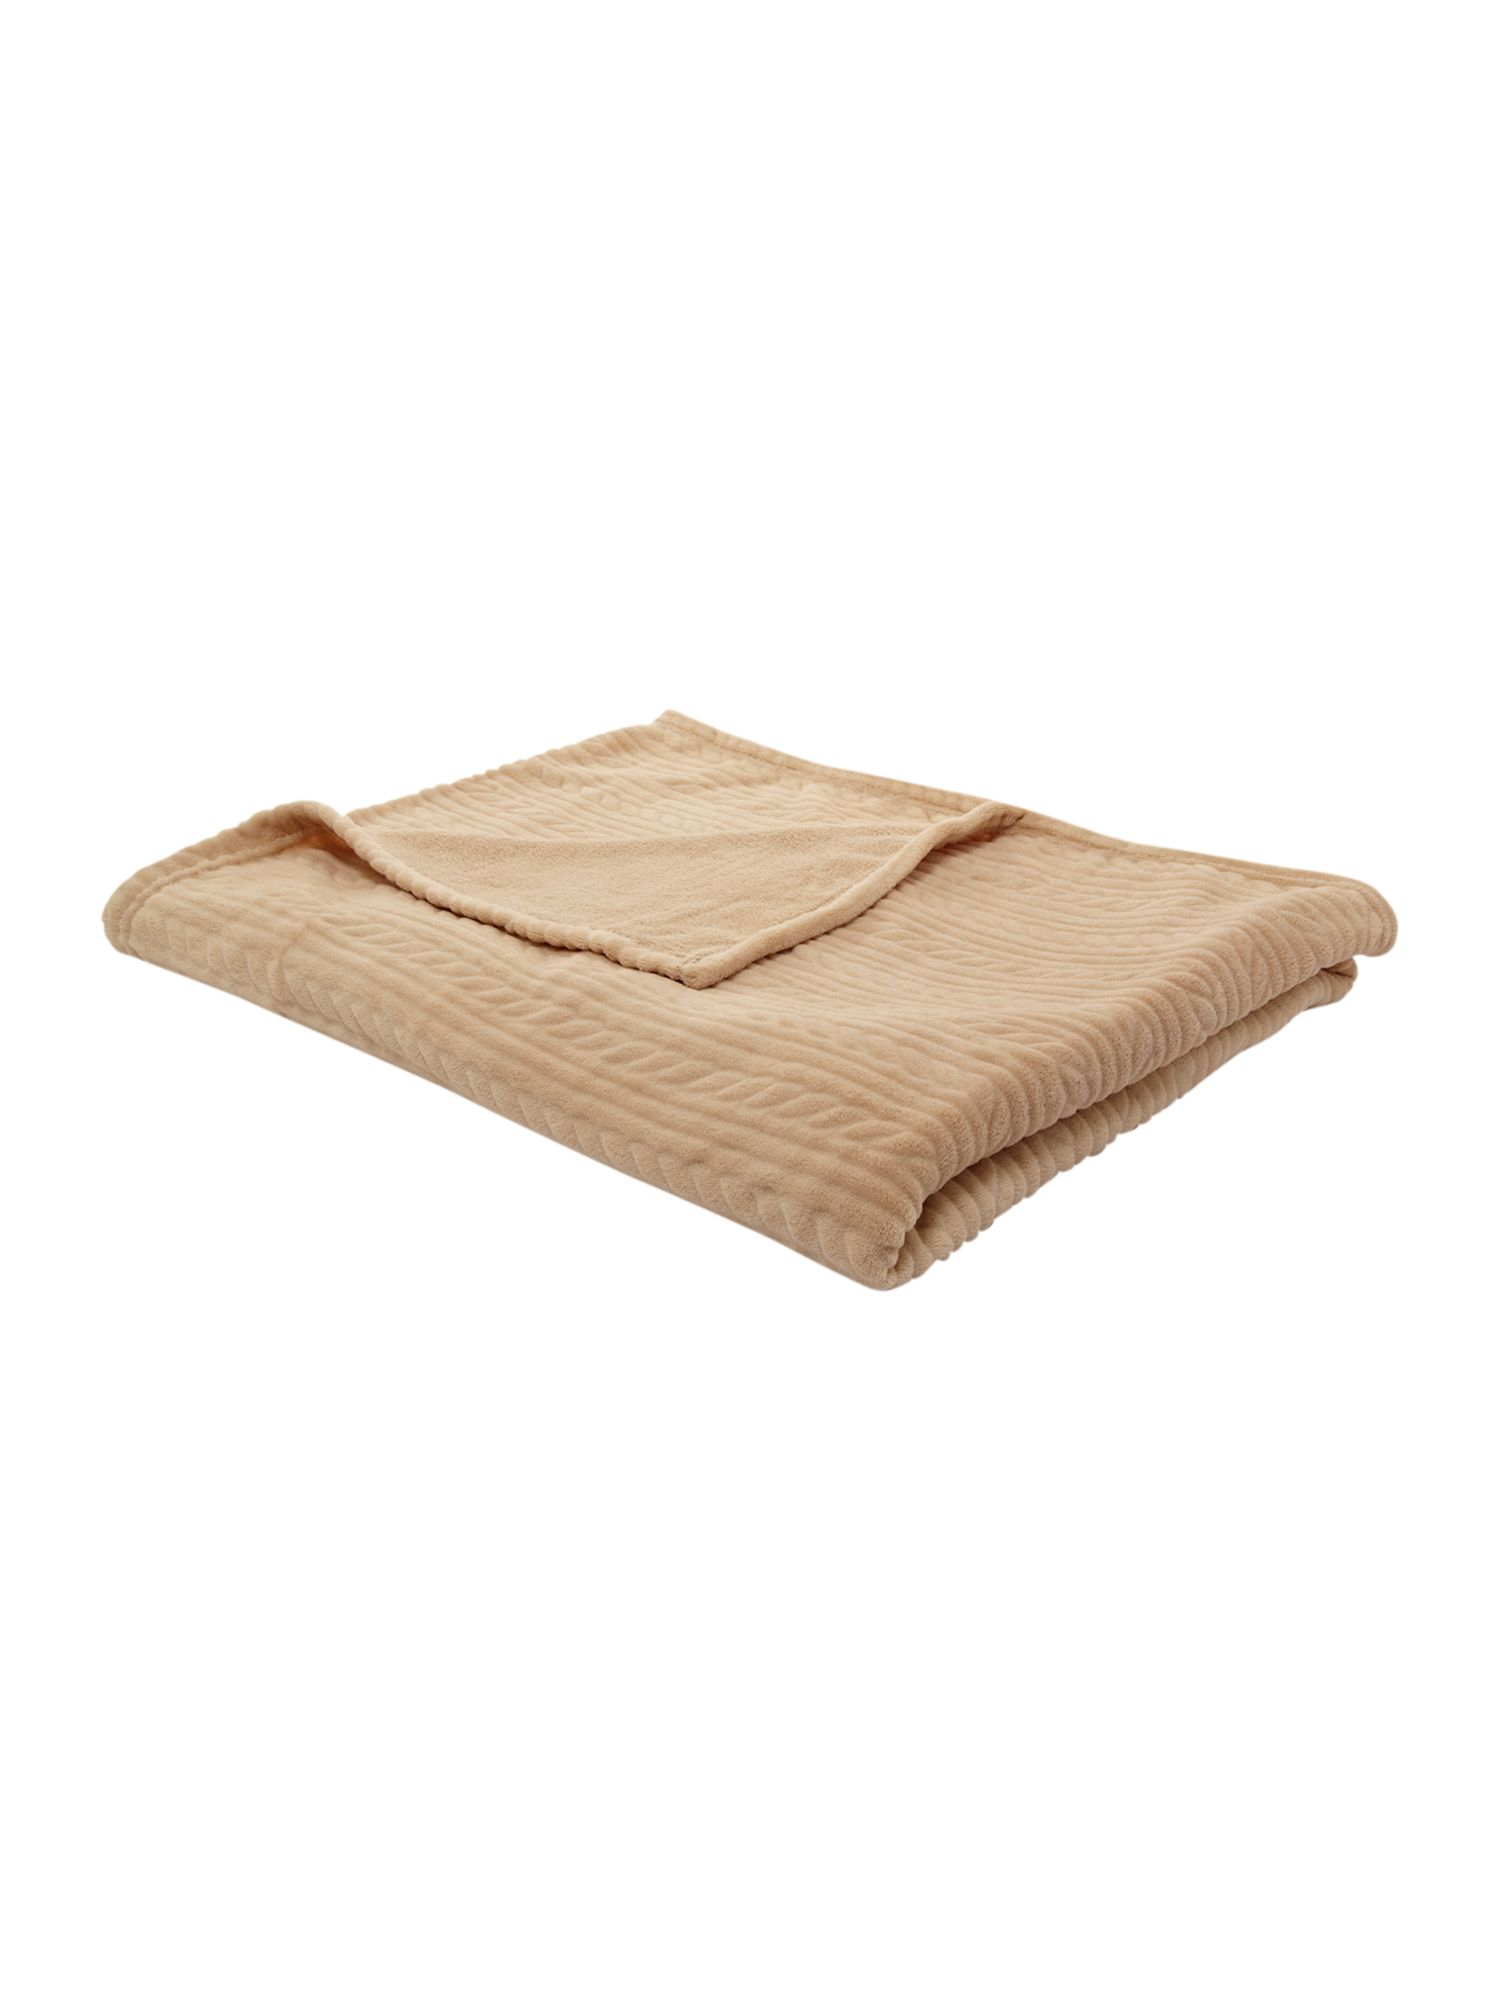 Textured fleece throw in natural